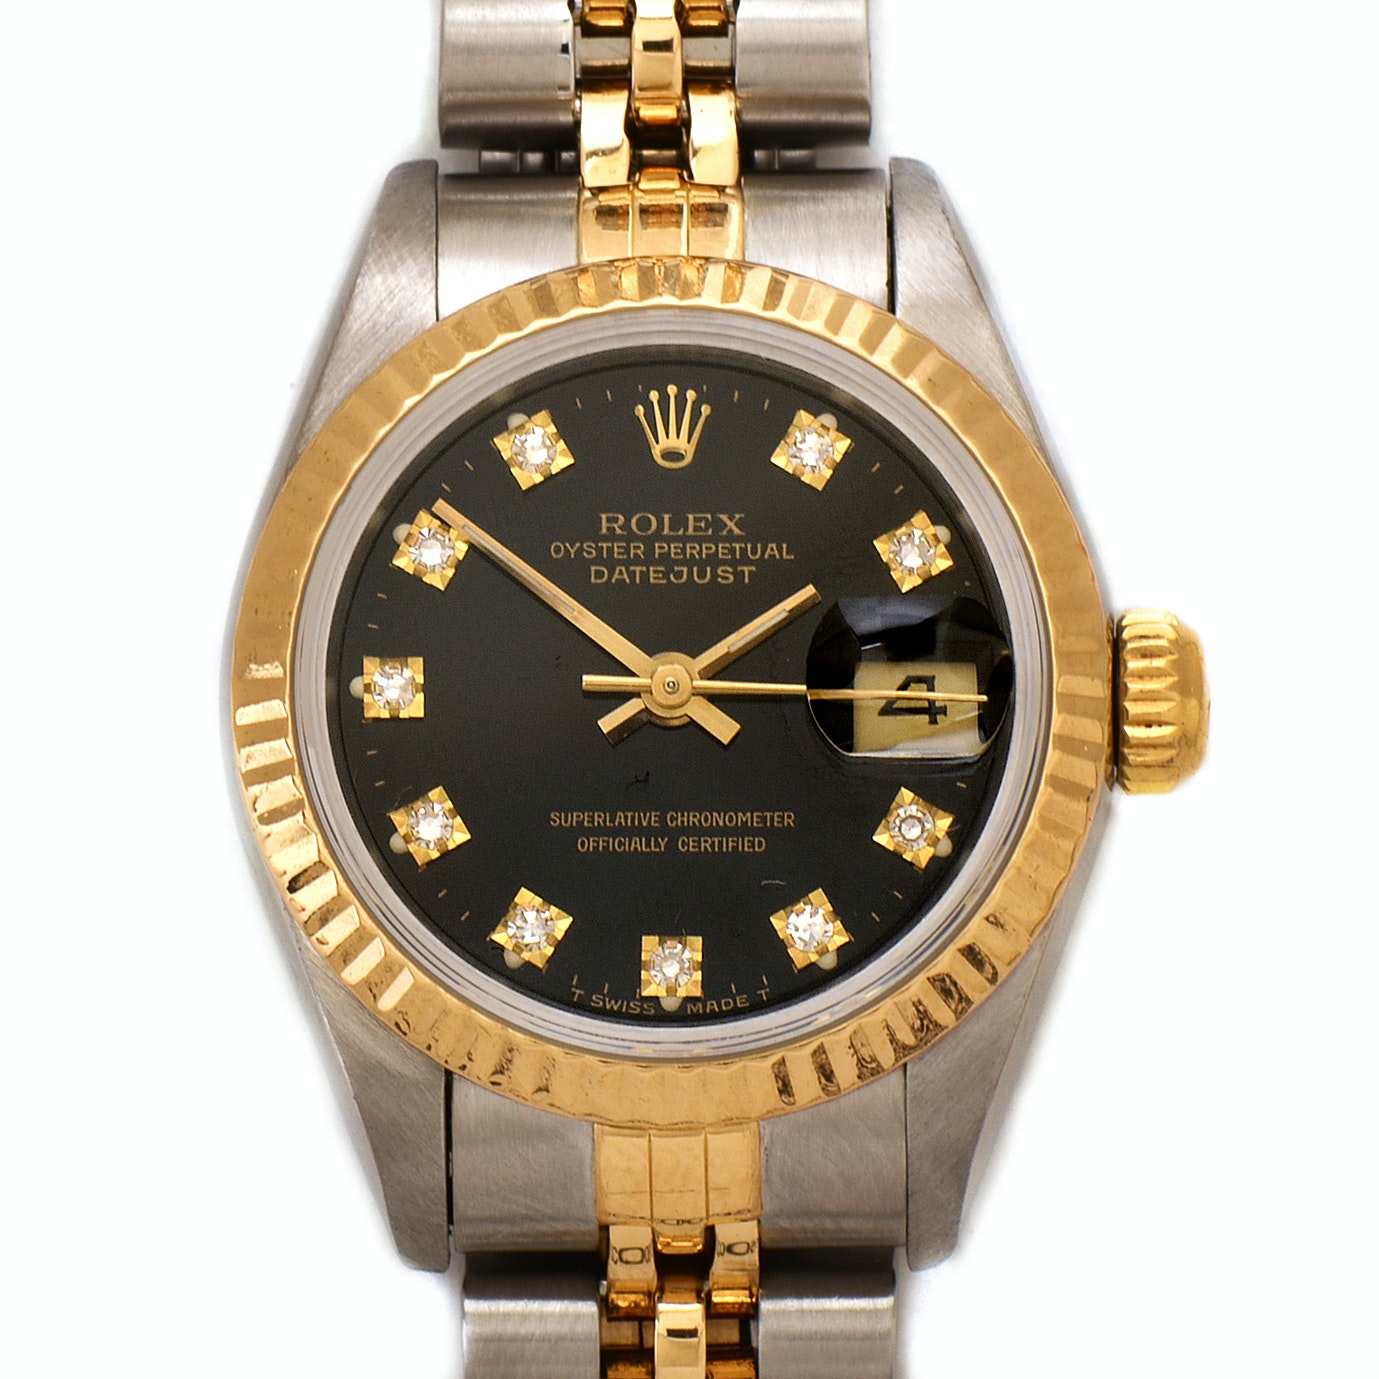 Rolex Datejust 18K Yellow Gold and Stainless Steel Diamond Wristwatch